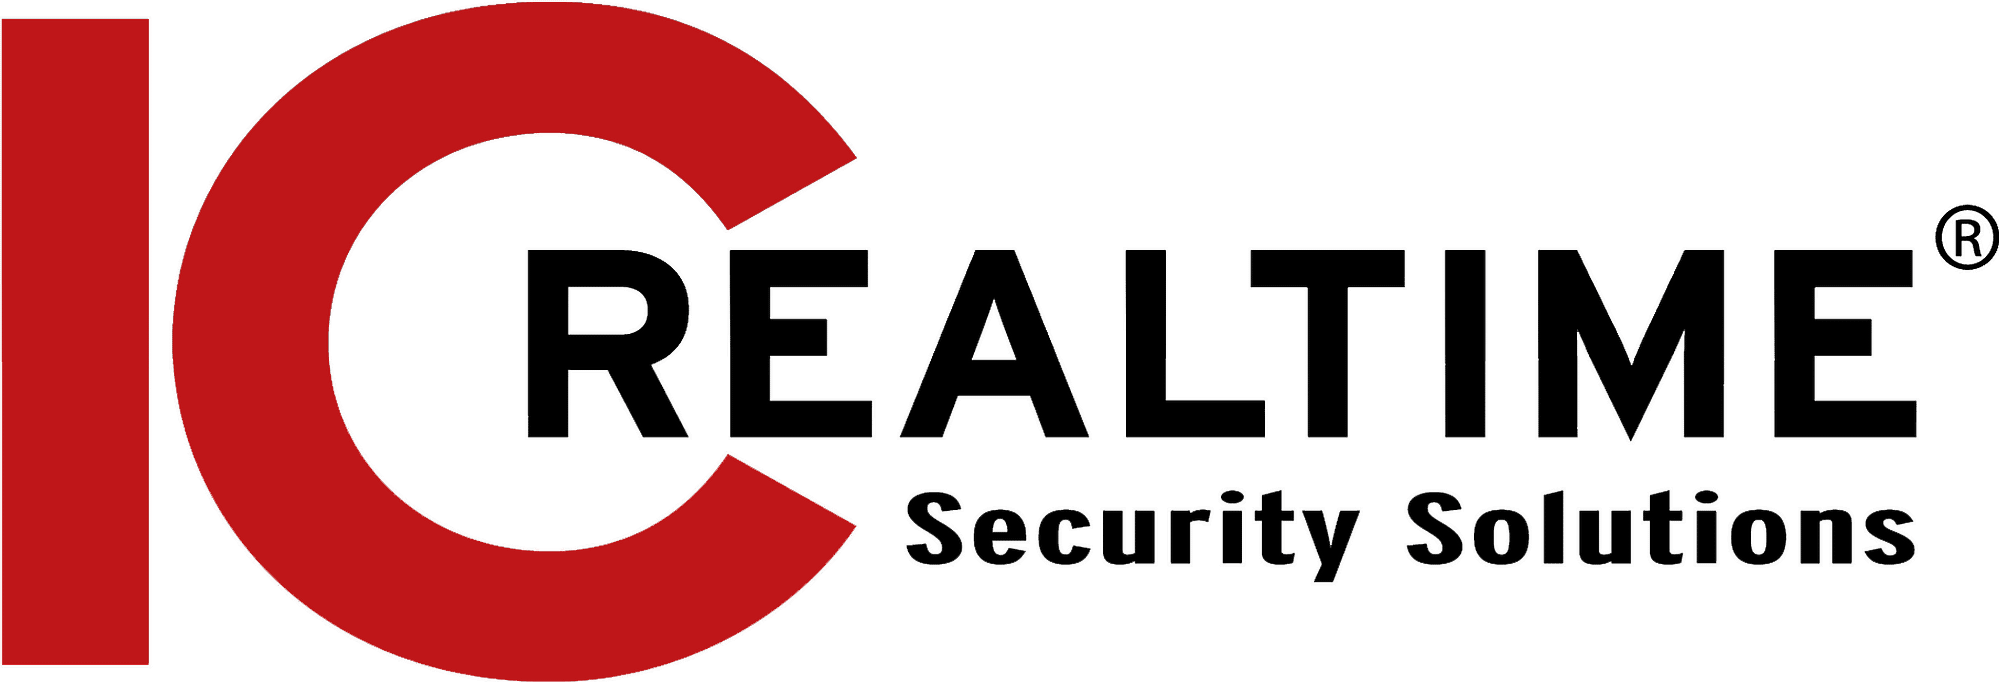 IC Realtime Security Solutions logo